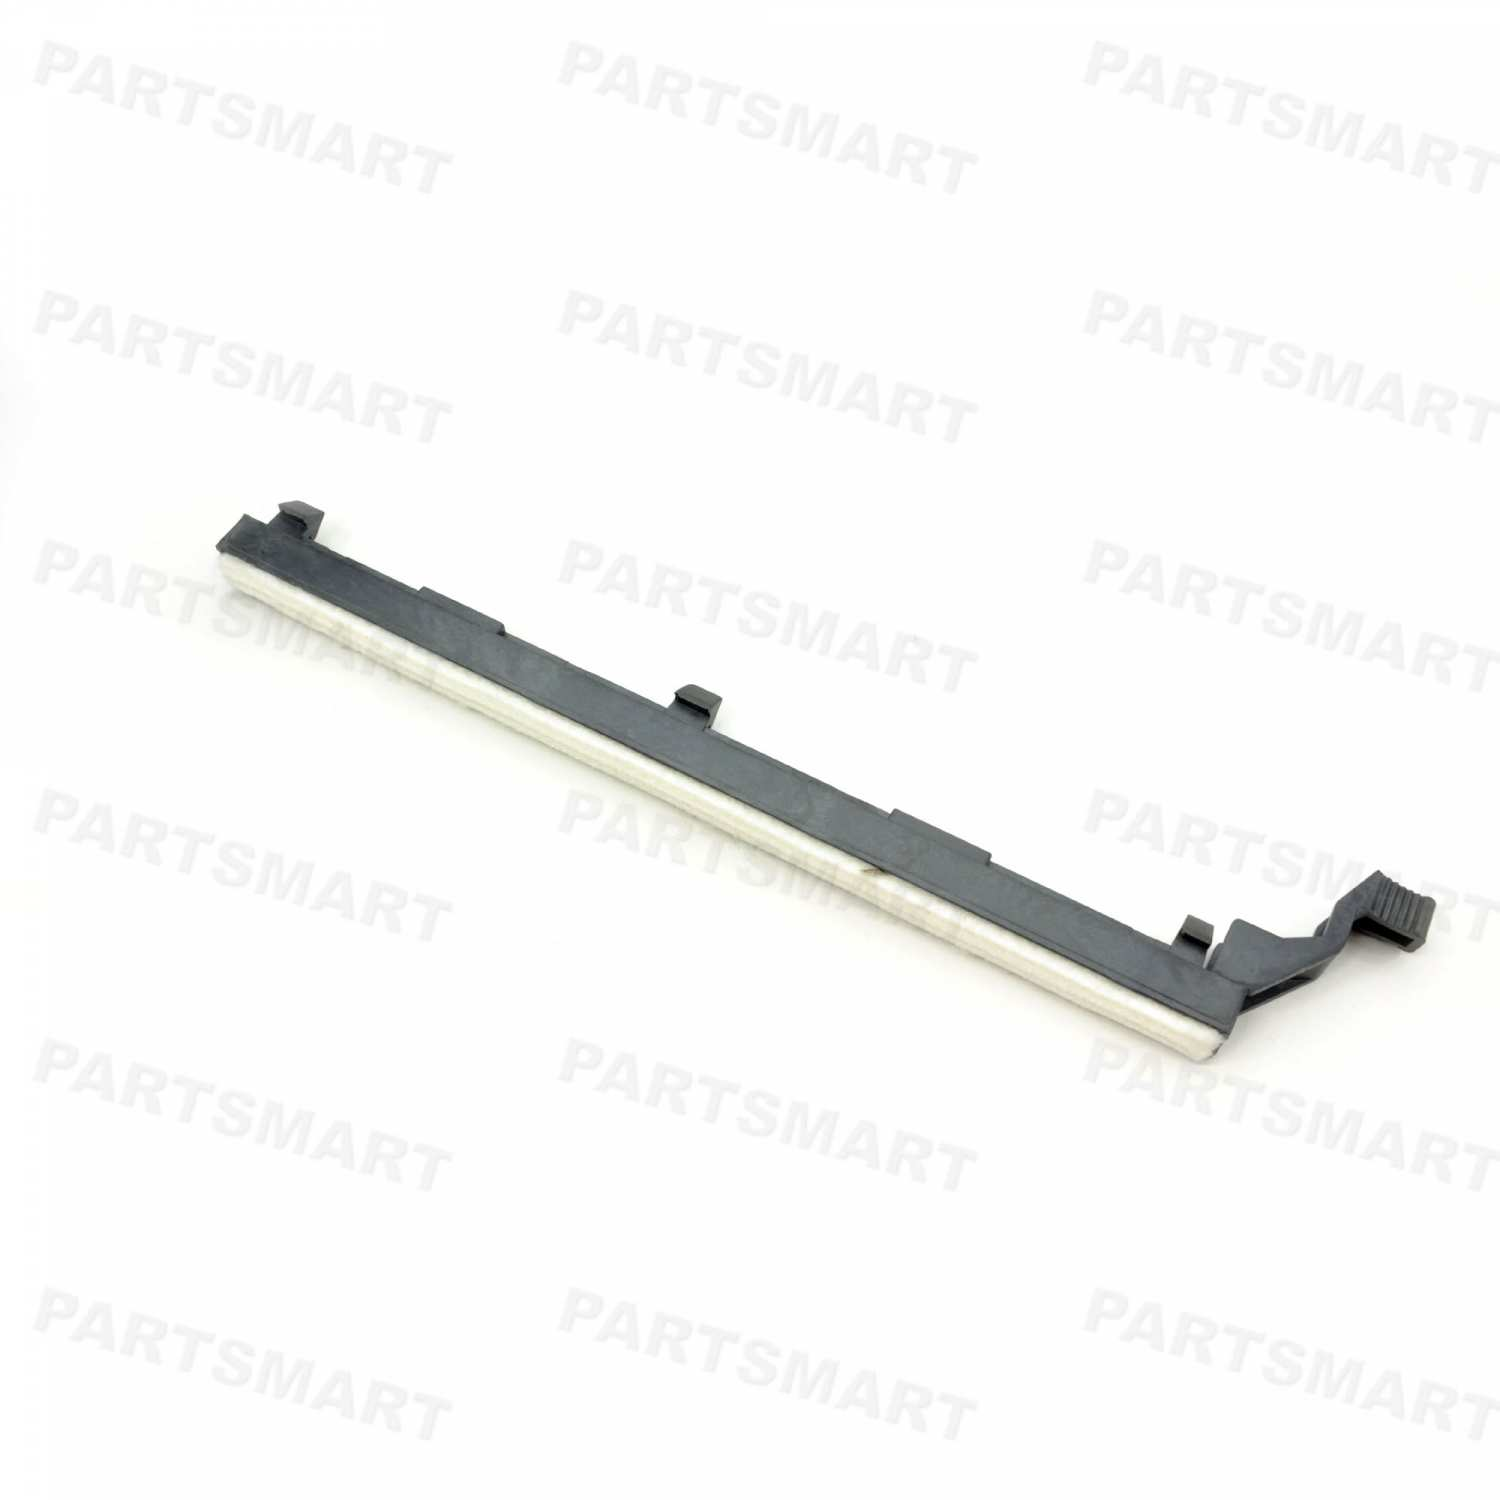 40X2665 Cleaning Wand Wiper for Lexmark T64x, T65x